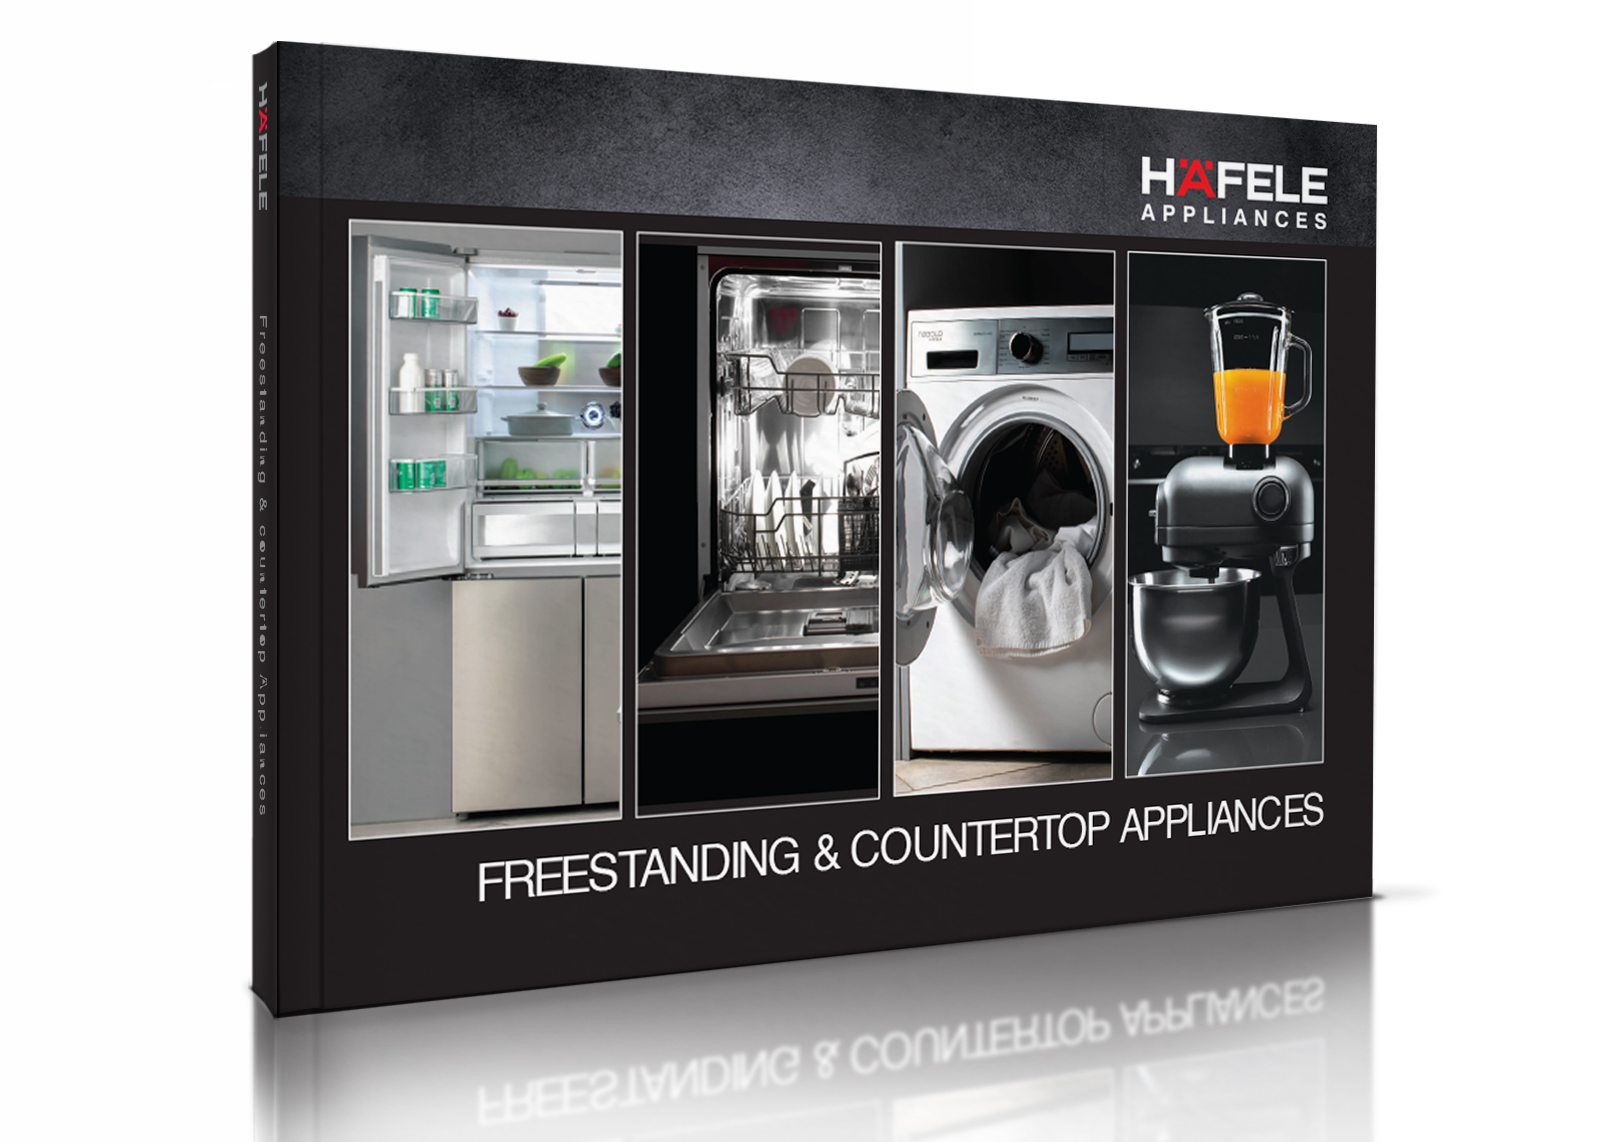 Freestanding and Countertop Appliances